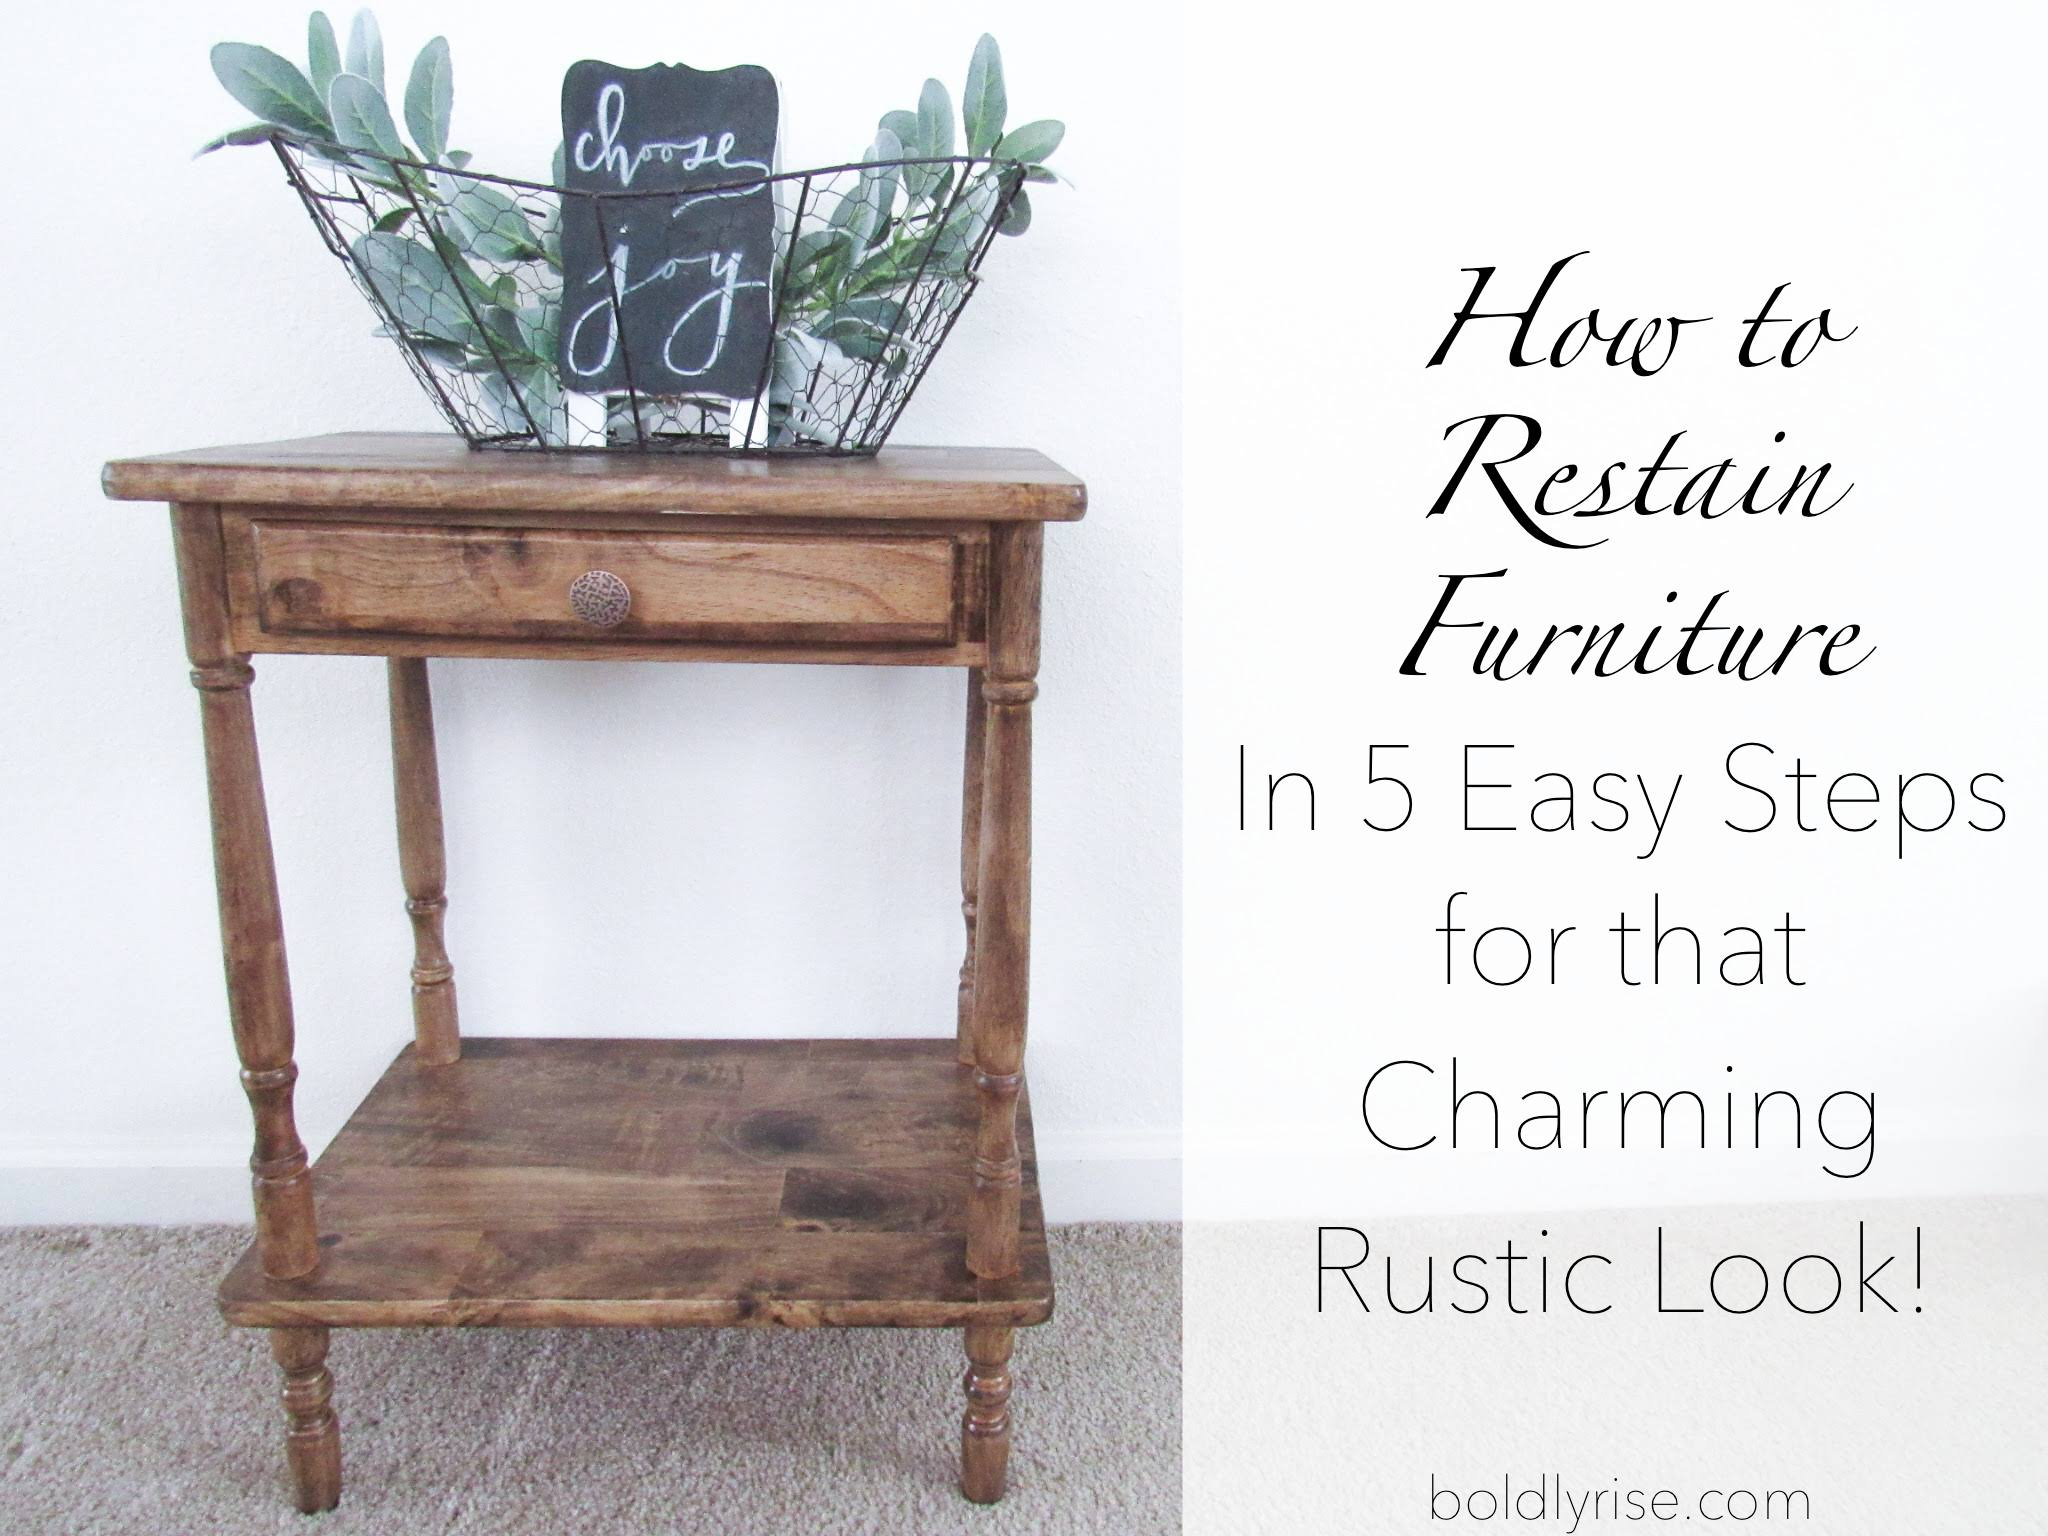 How To Restain Furniture In 5 Easy Steps For That Charming Rustic